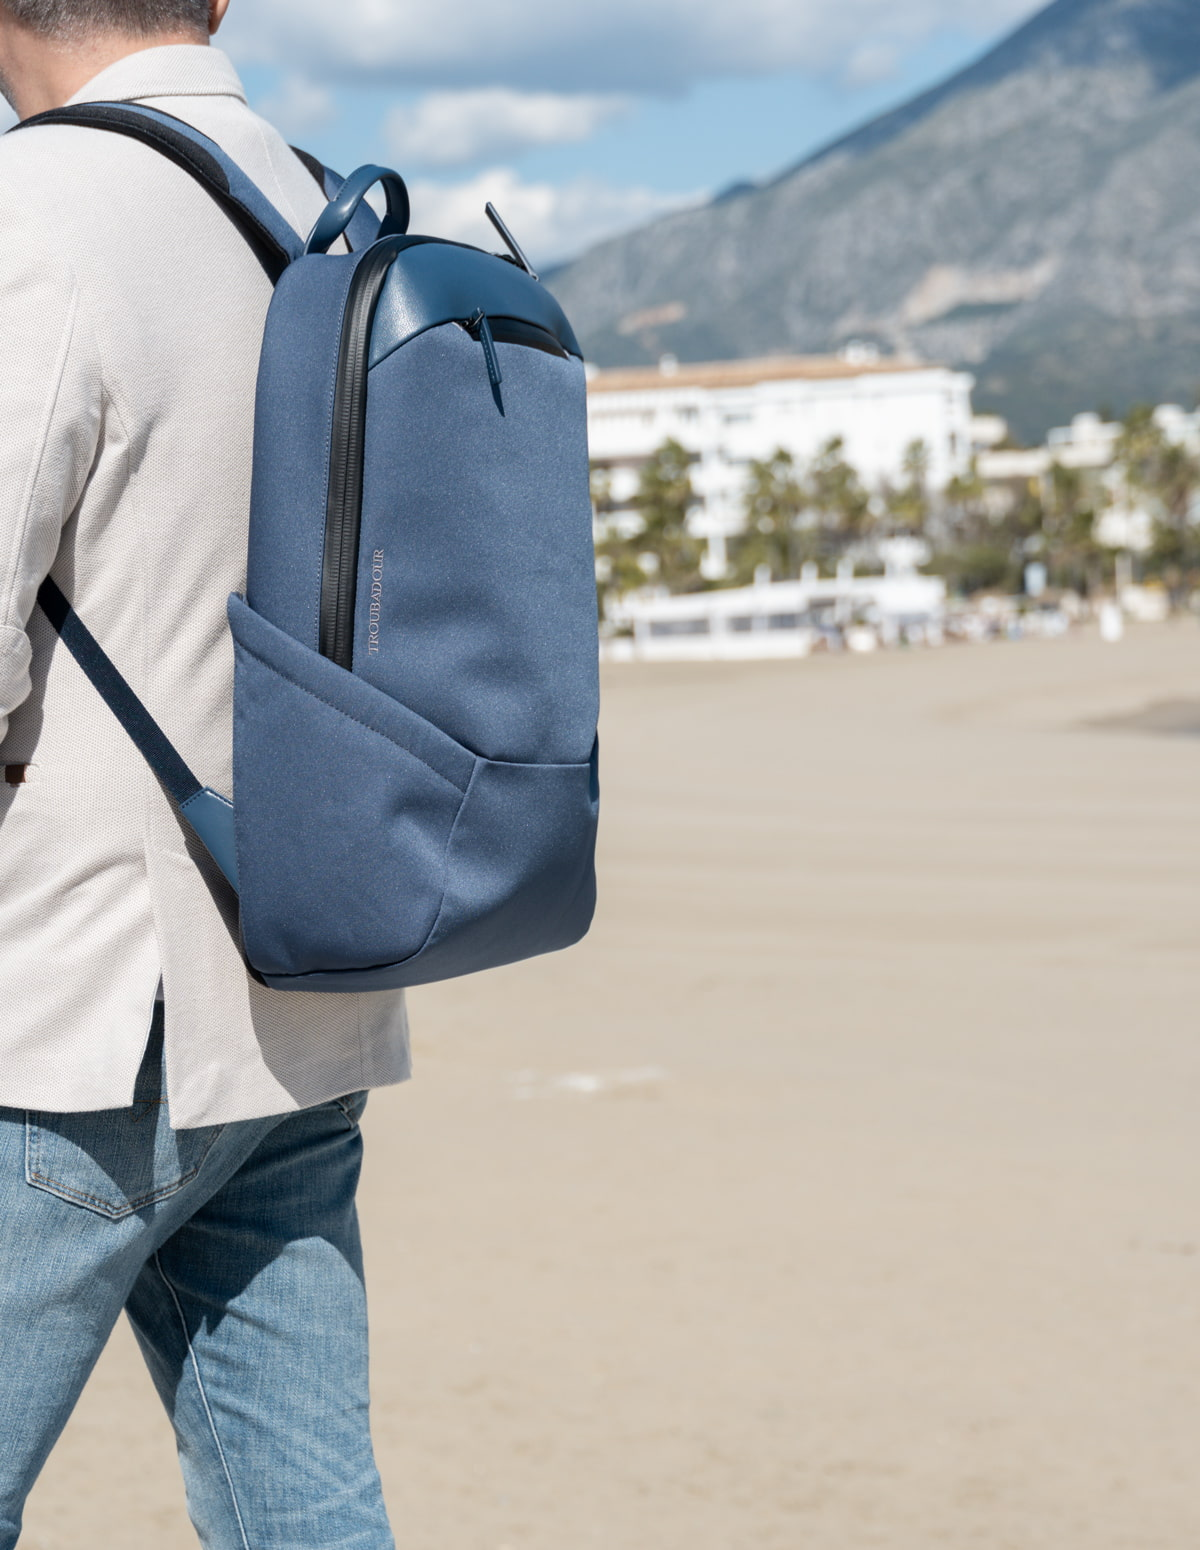 EDC backpack for commuters